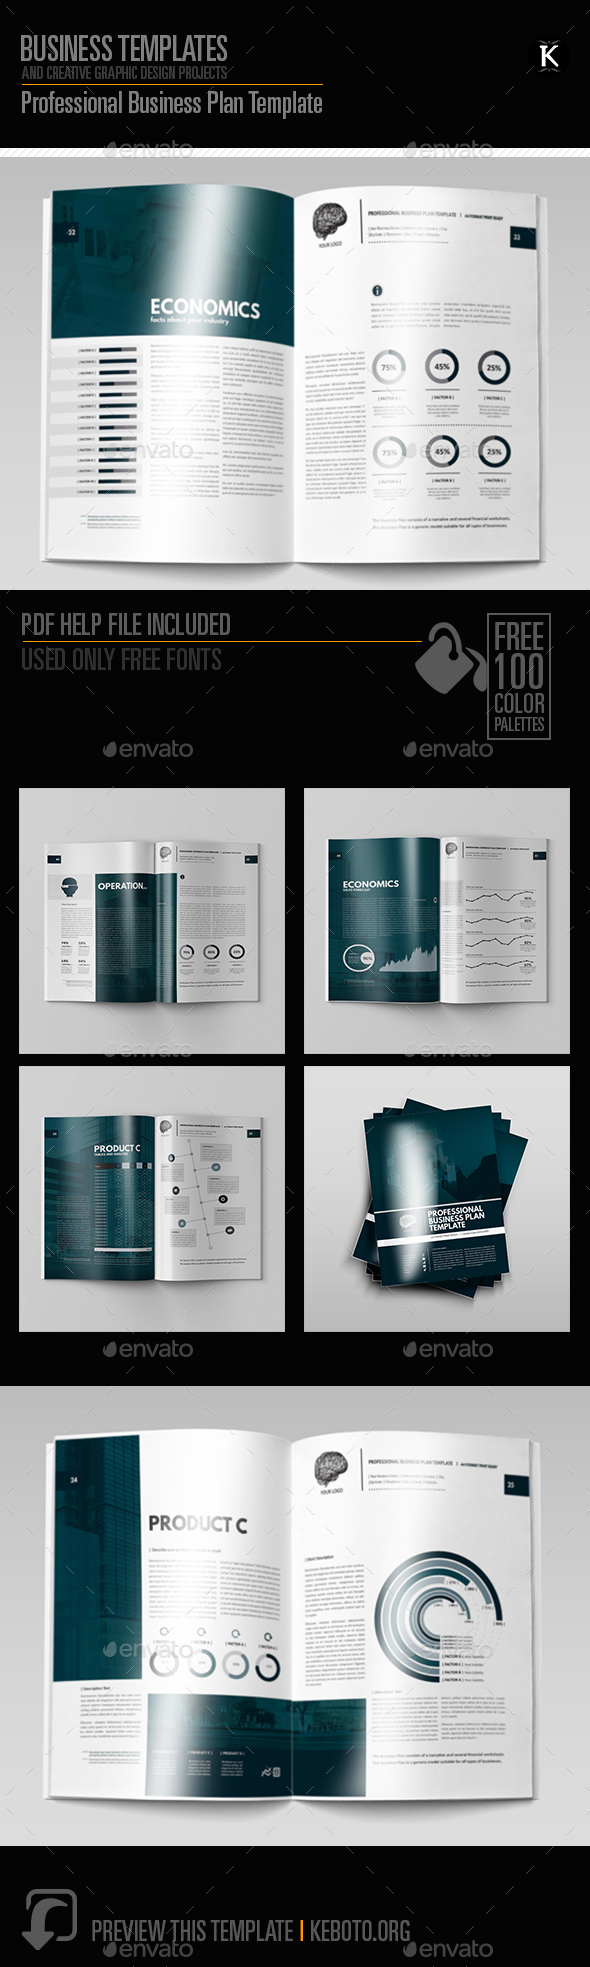 Professional business plan template by keboto graphicriver professional business plan template miscellaneous print templates flashek Gallery